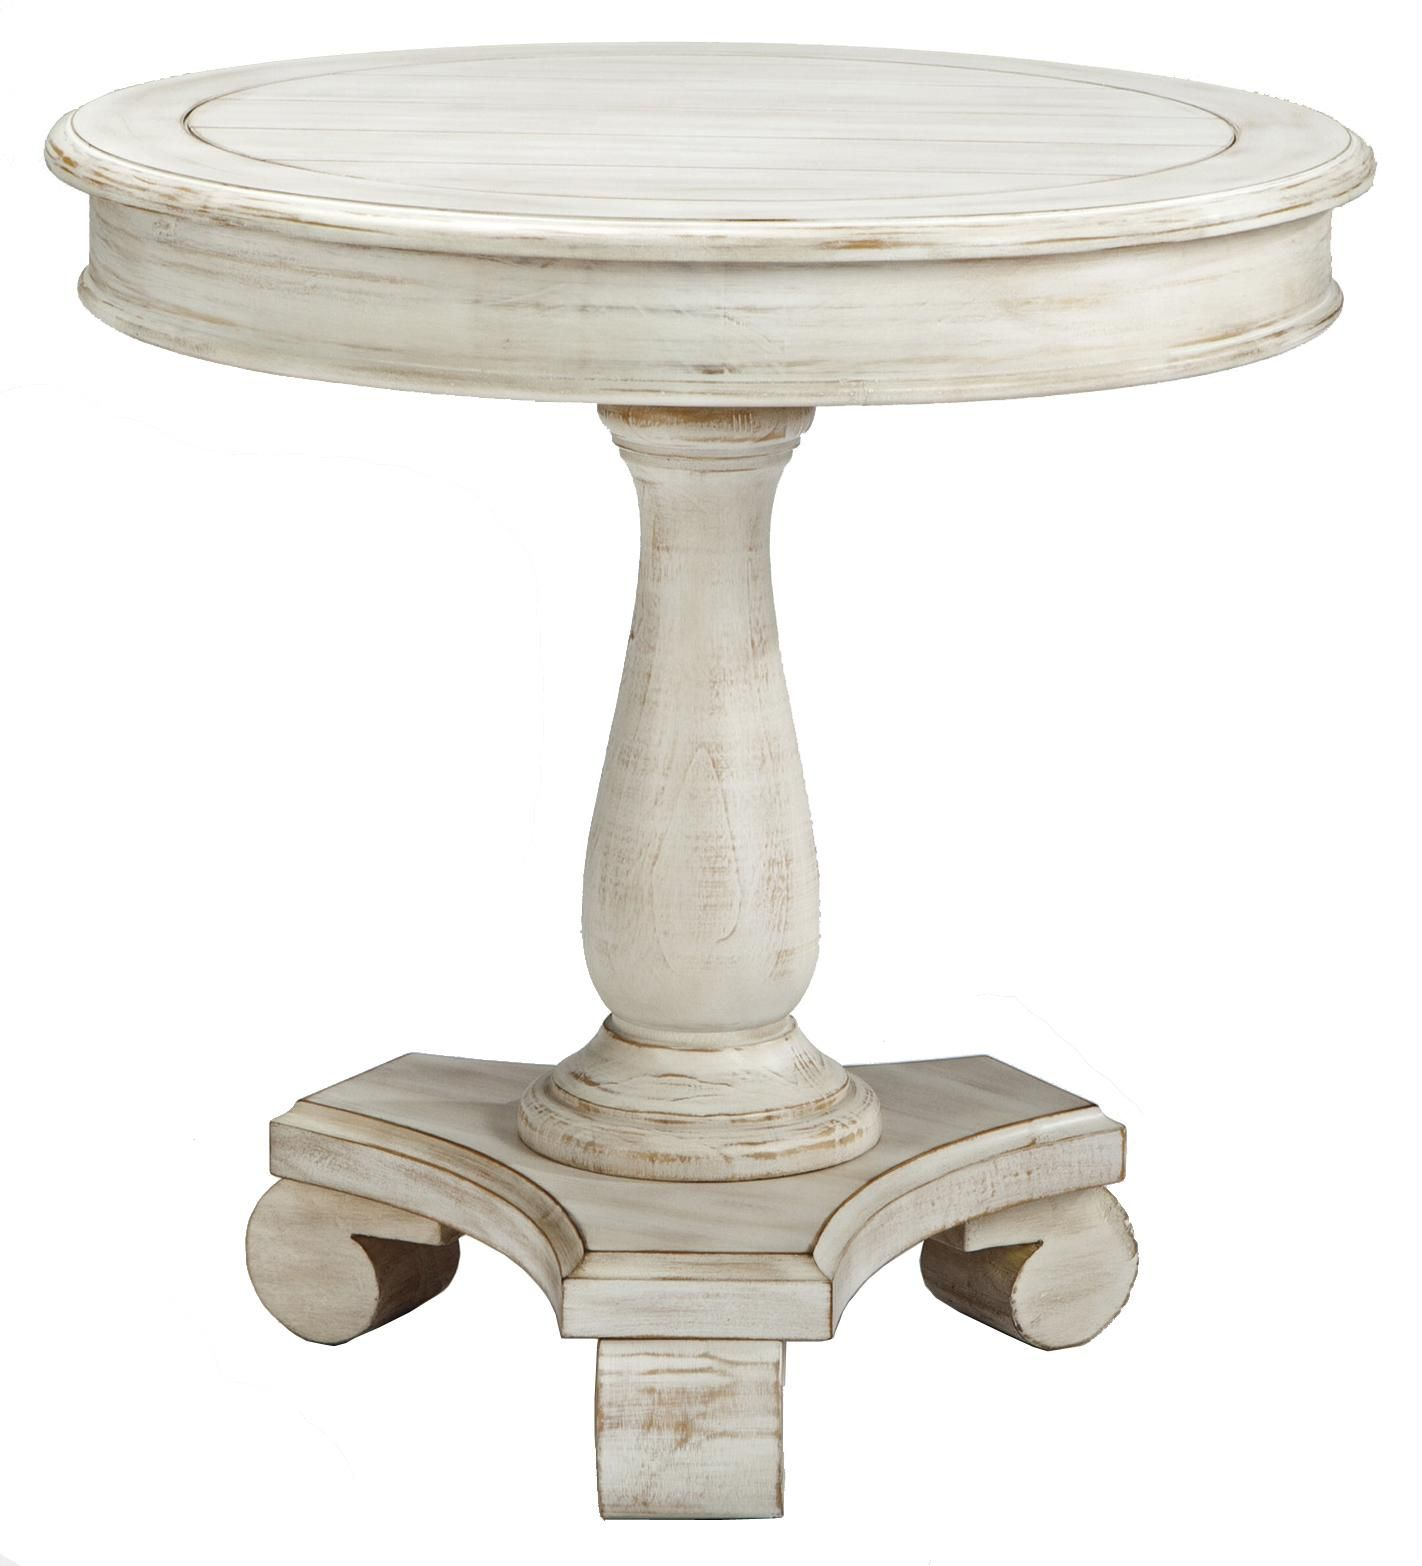 Mirimyn Round Accent Table With Turned Pedestal Base By Signature